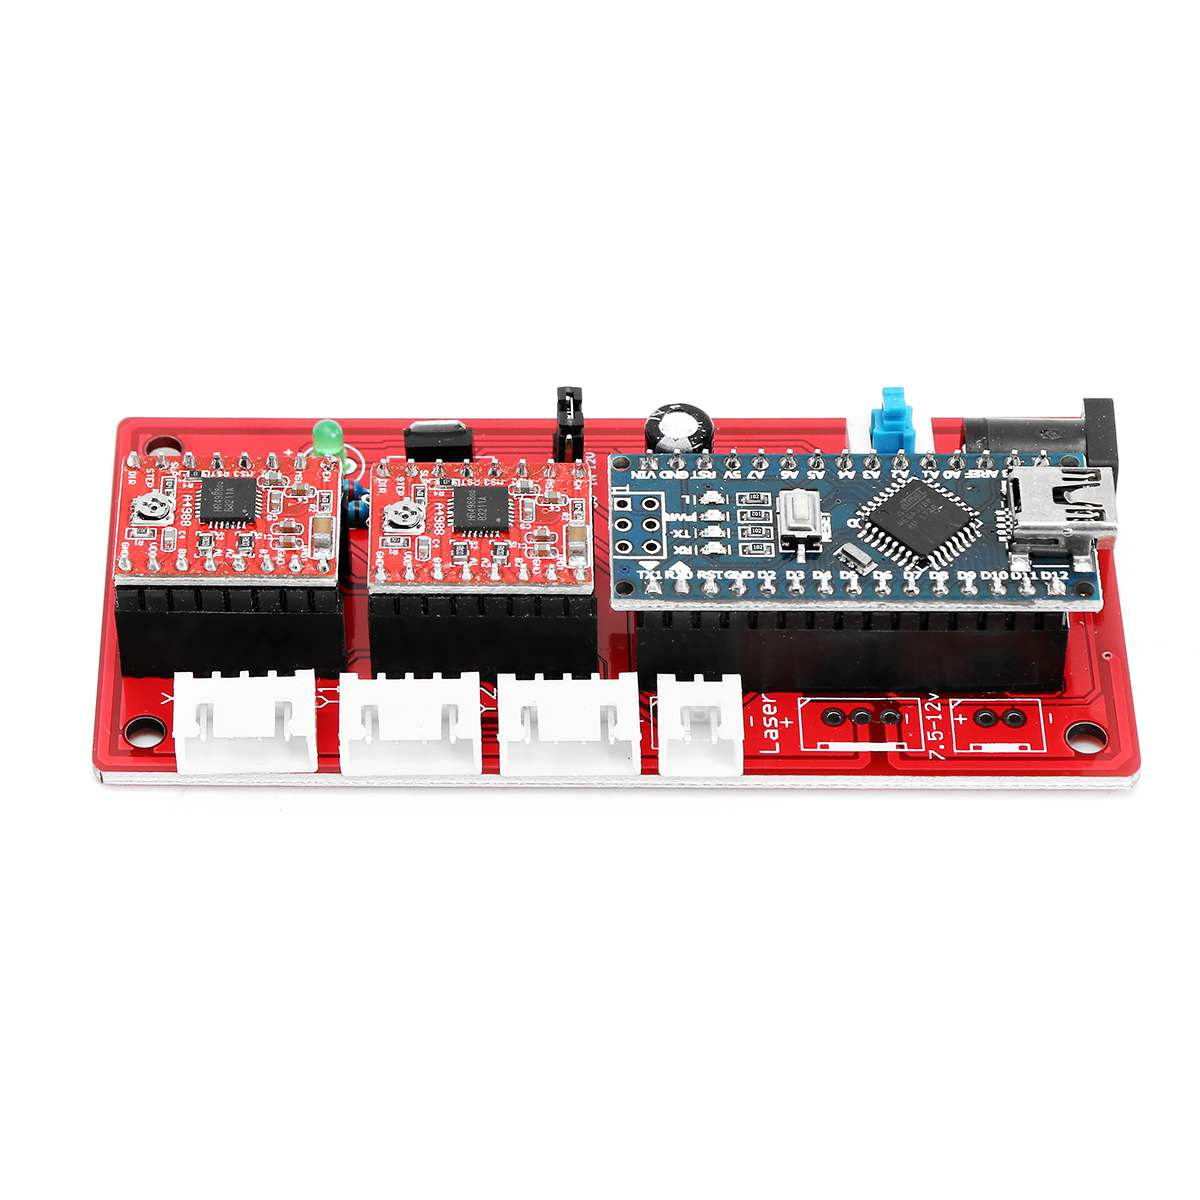 2axis USB Control Board DIY CNC Laser Engraving Machine Controller Panel Support Laser Module Output Indicator